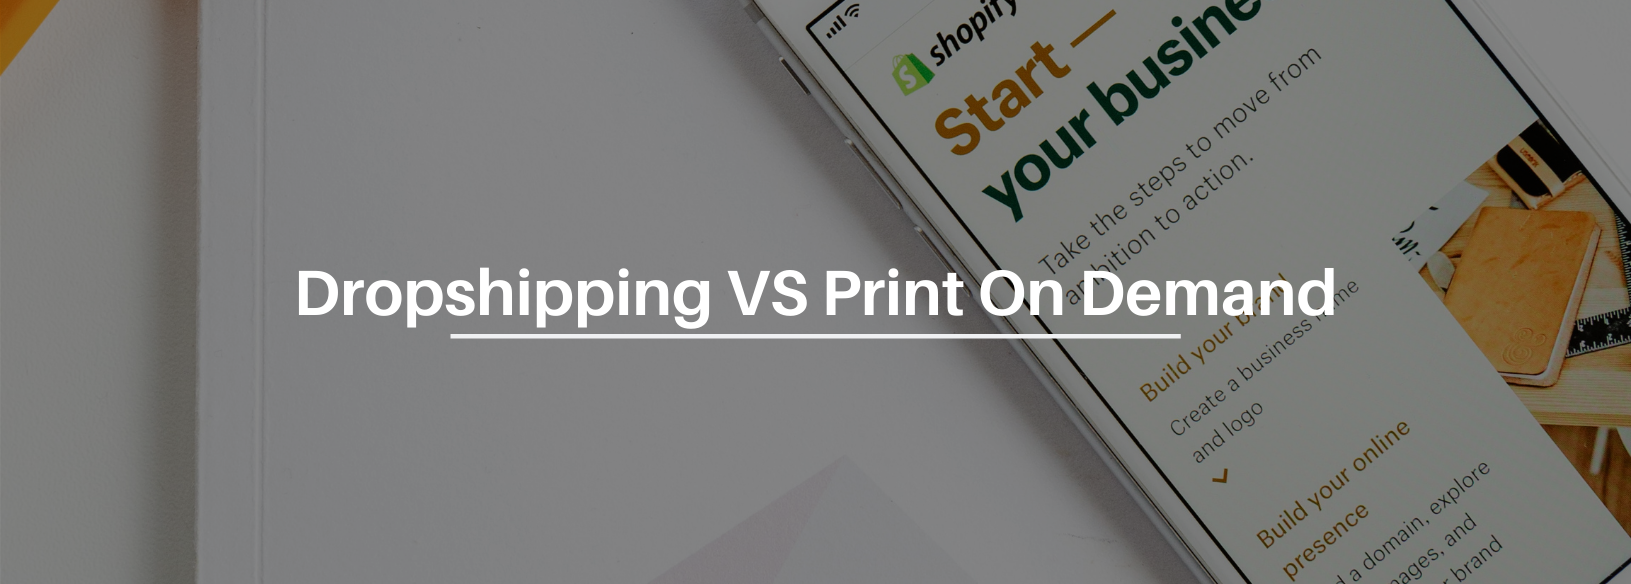 Dropshipping VS Print On Demand – Which Is Better?